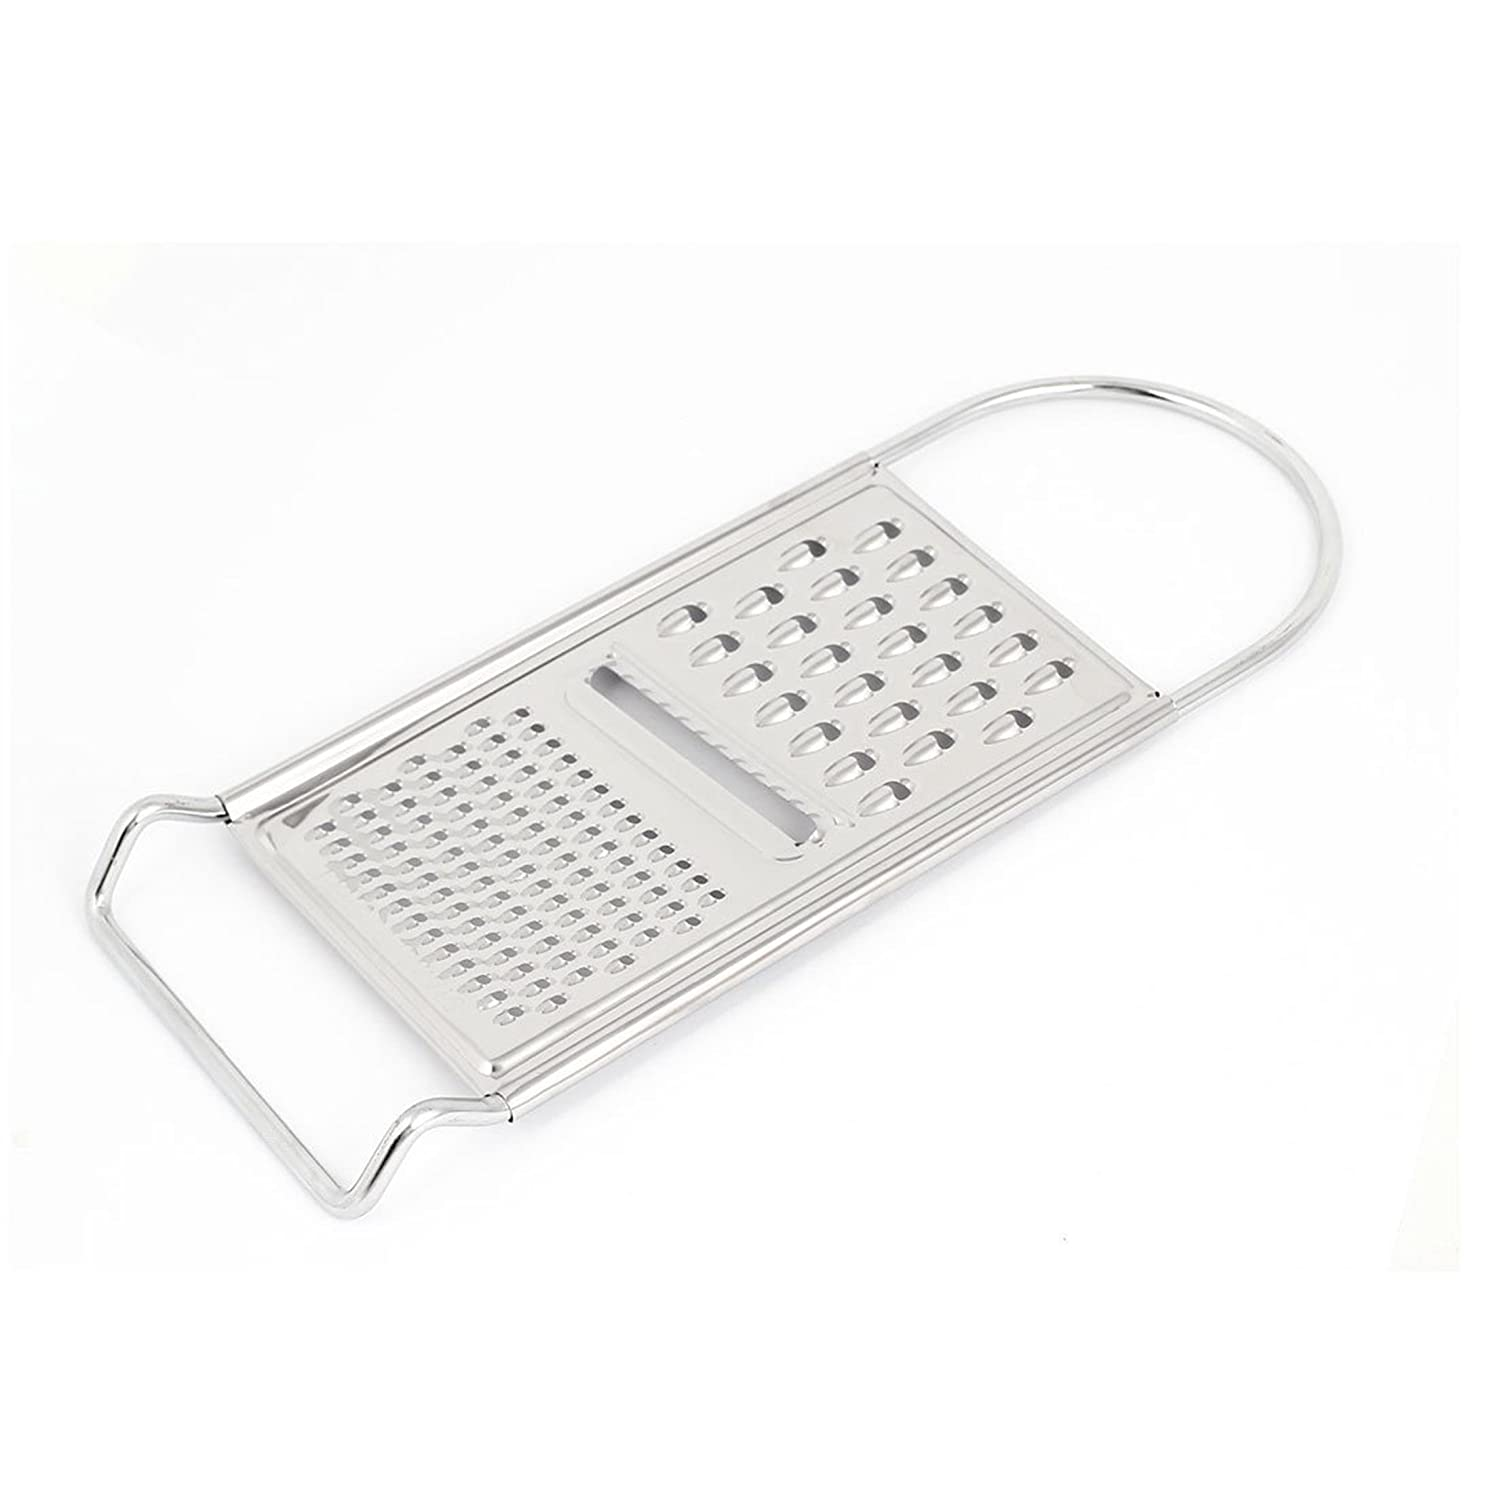 Keraiz Universal Grater Original for Cheese Vegetables Easy Job, Stainless Steel, Silver, 24 x 12 x 12 cm Stella 3U-QY8B-RCGX